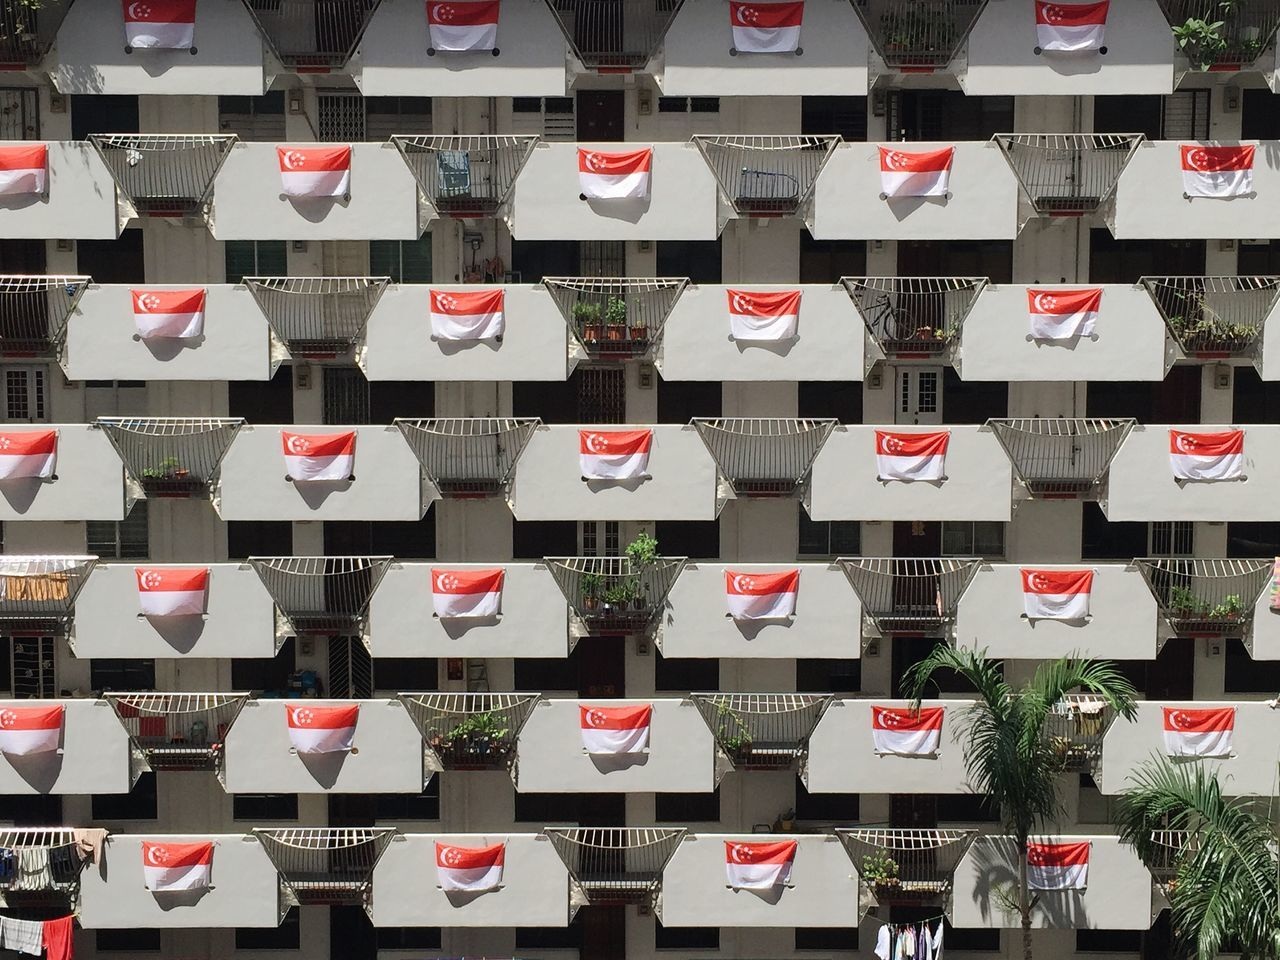 Full frame shot of singaporean flags on building balconies